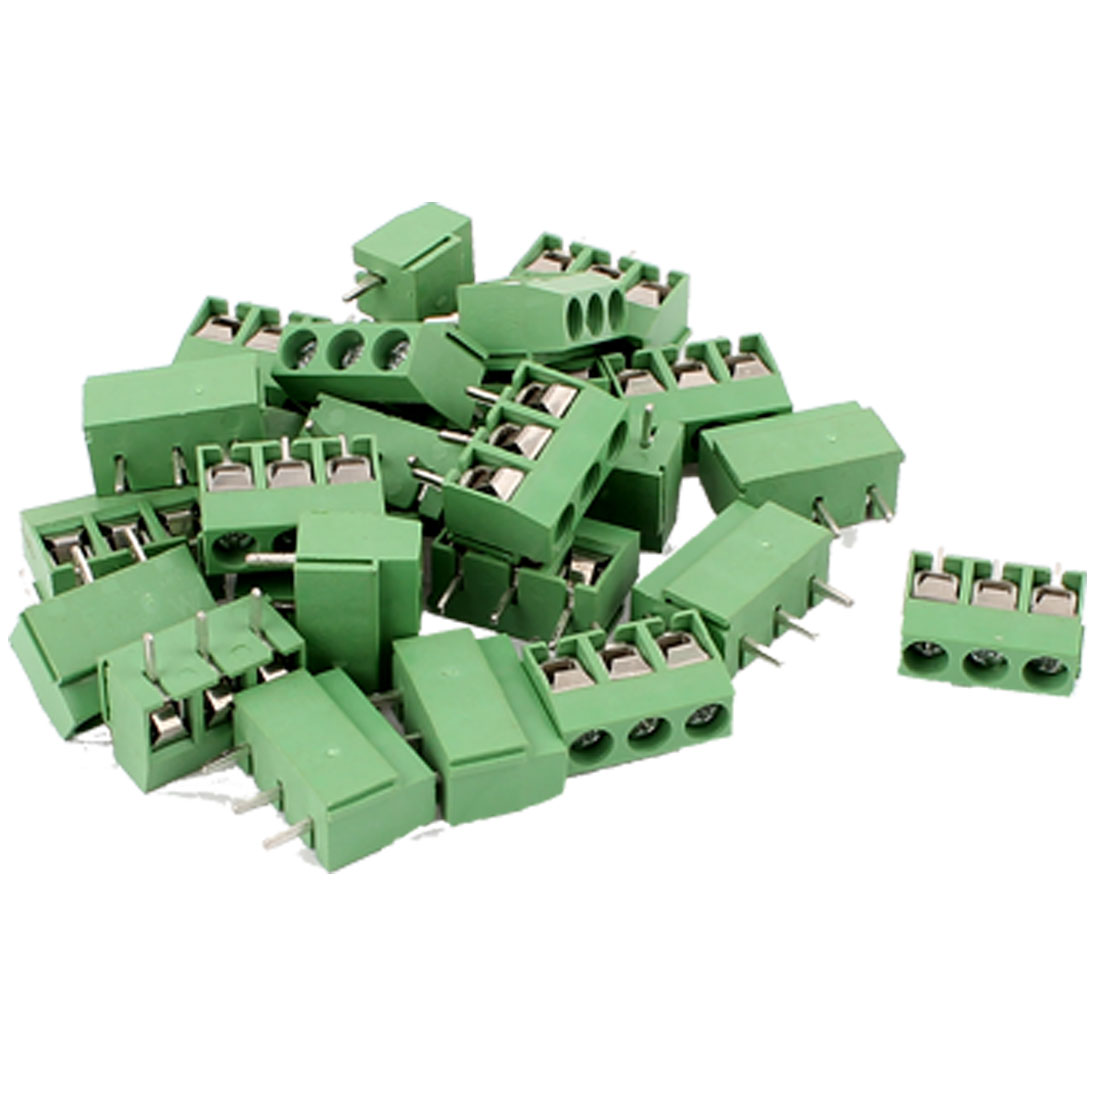 25 Pcs 14-22AWG 3 Way Plug-in PCB Screw Terminal Block Connector 5.08mm